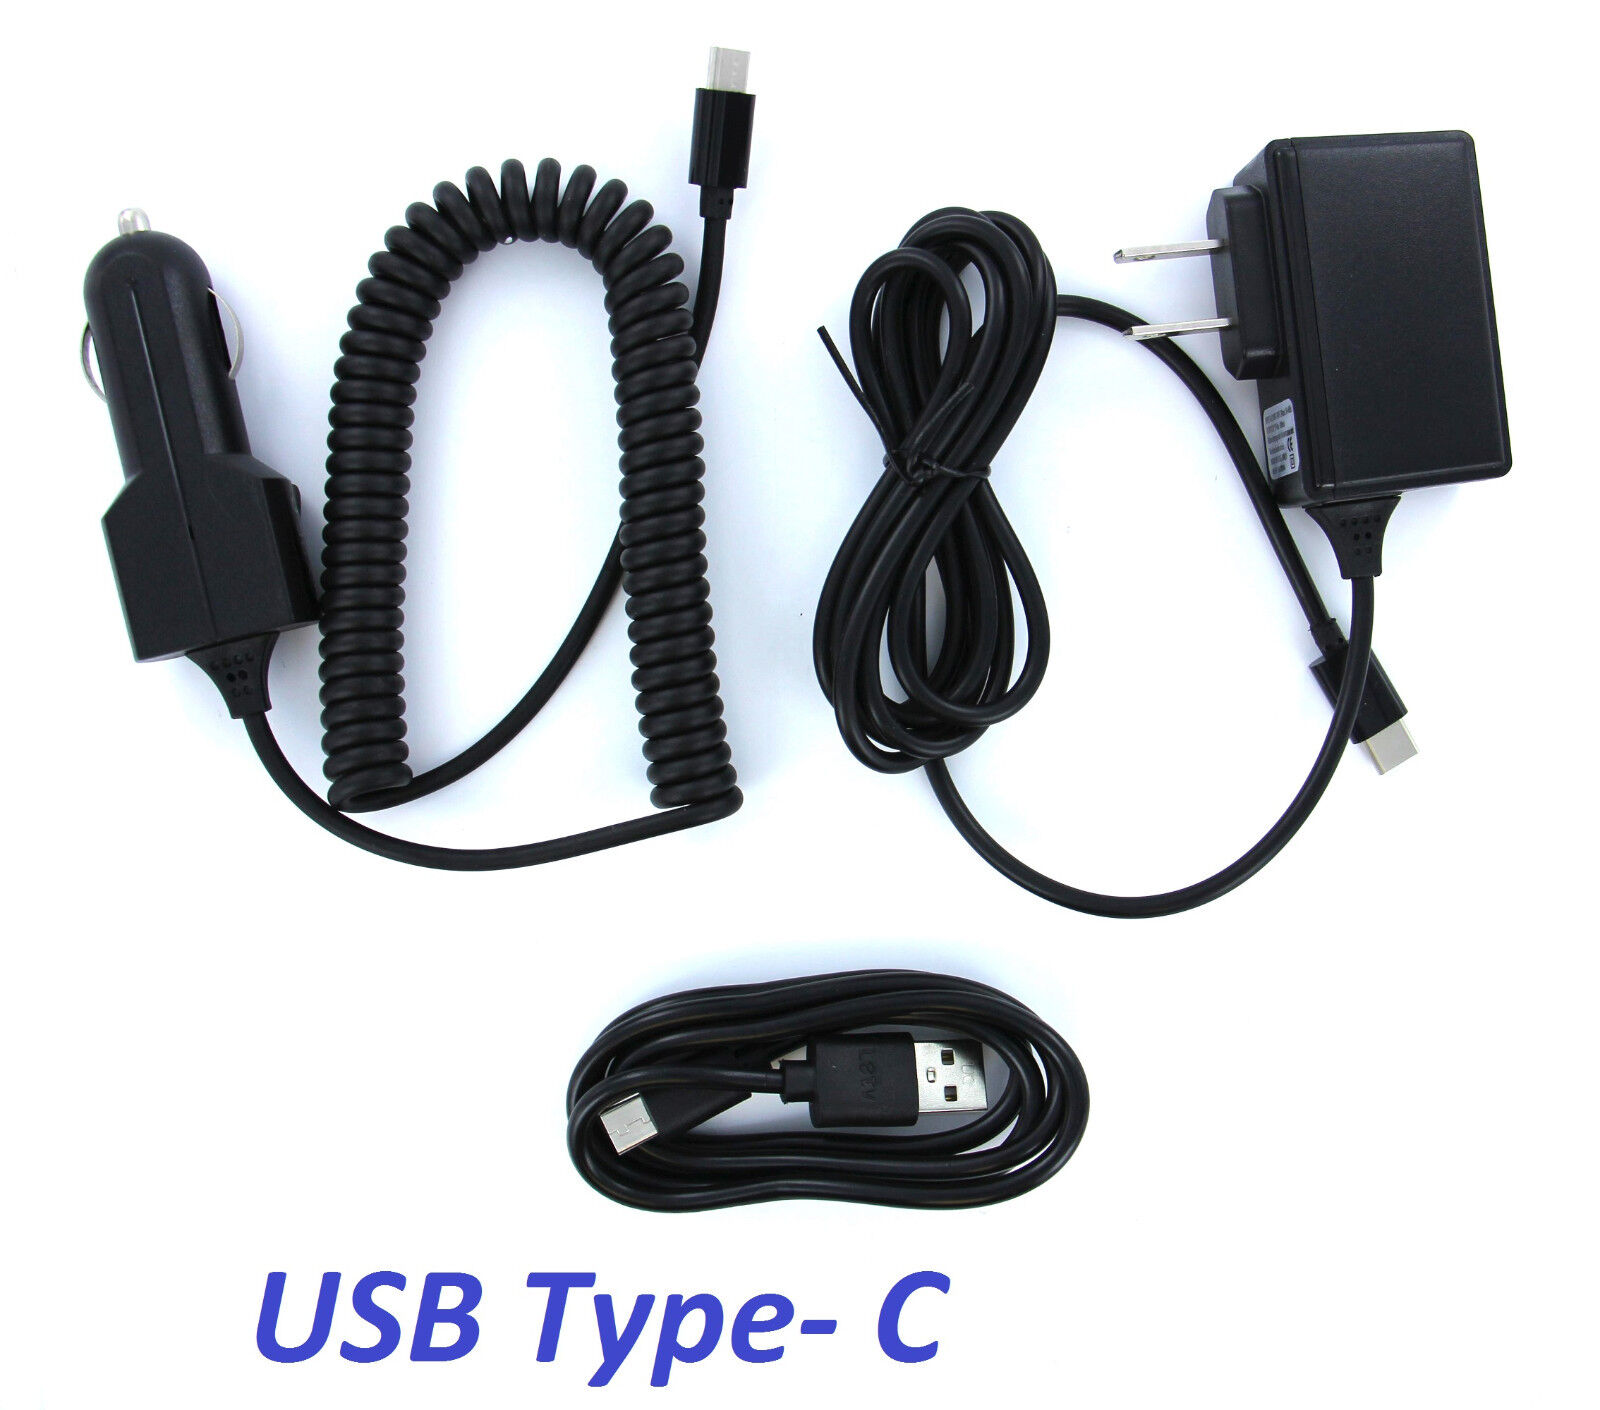 Type-C Home Wall Charger / Car Charger / Data Cable Combo fo